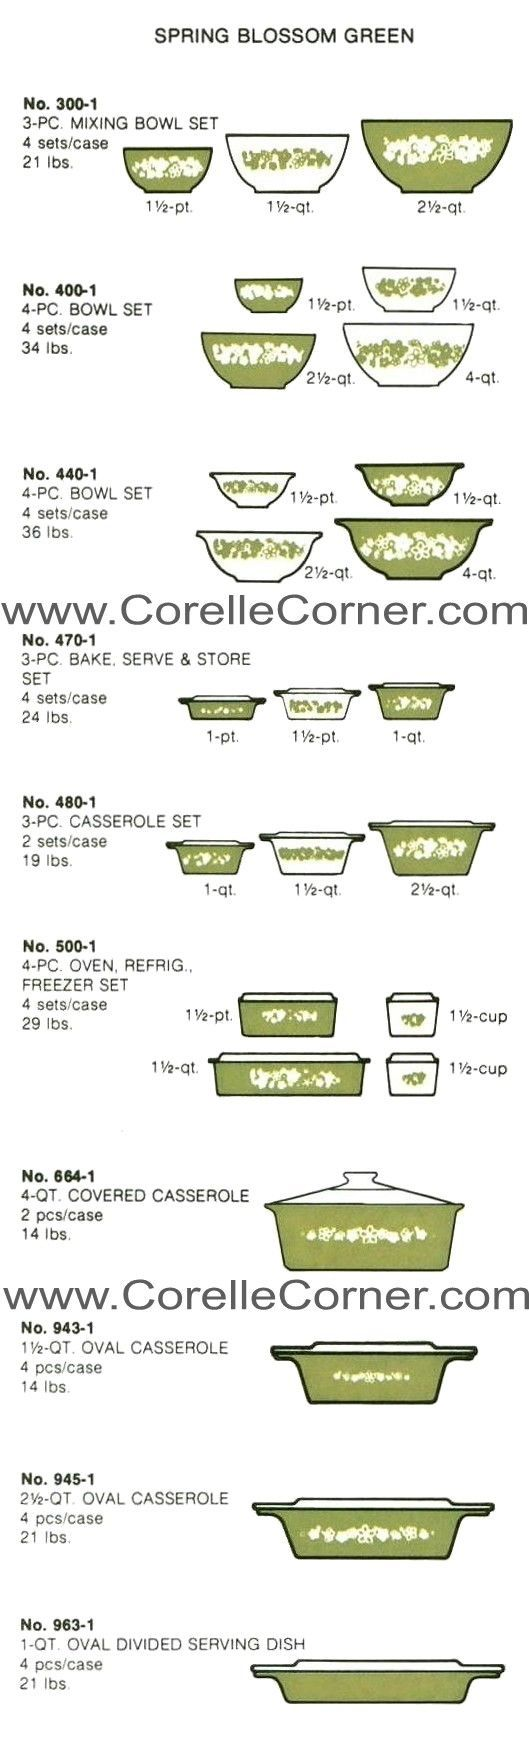 Pyrex Spring Blossom Green One Of My Favorites This Is The Pattern I Grew Seeing In Moms Kitchen